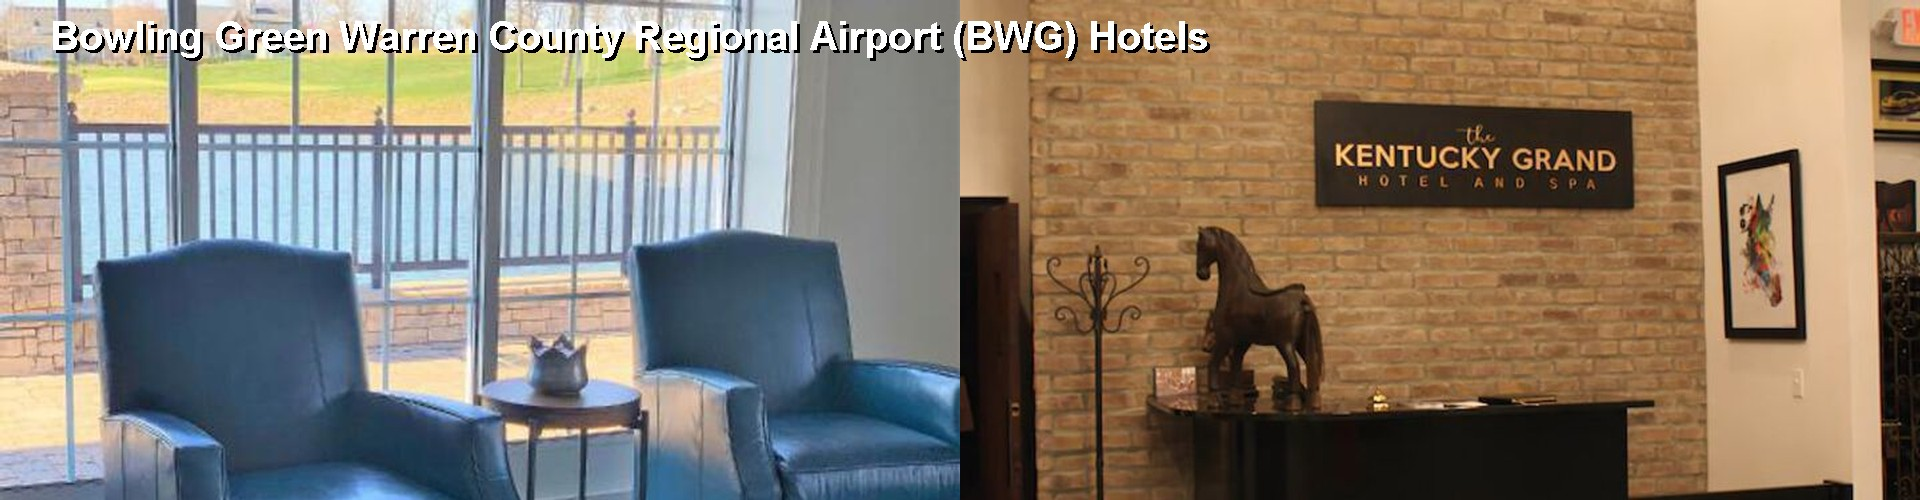 5 Best Hotels near Bowling Green Warren County Regional Airport (BWG)